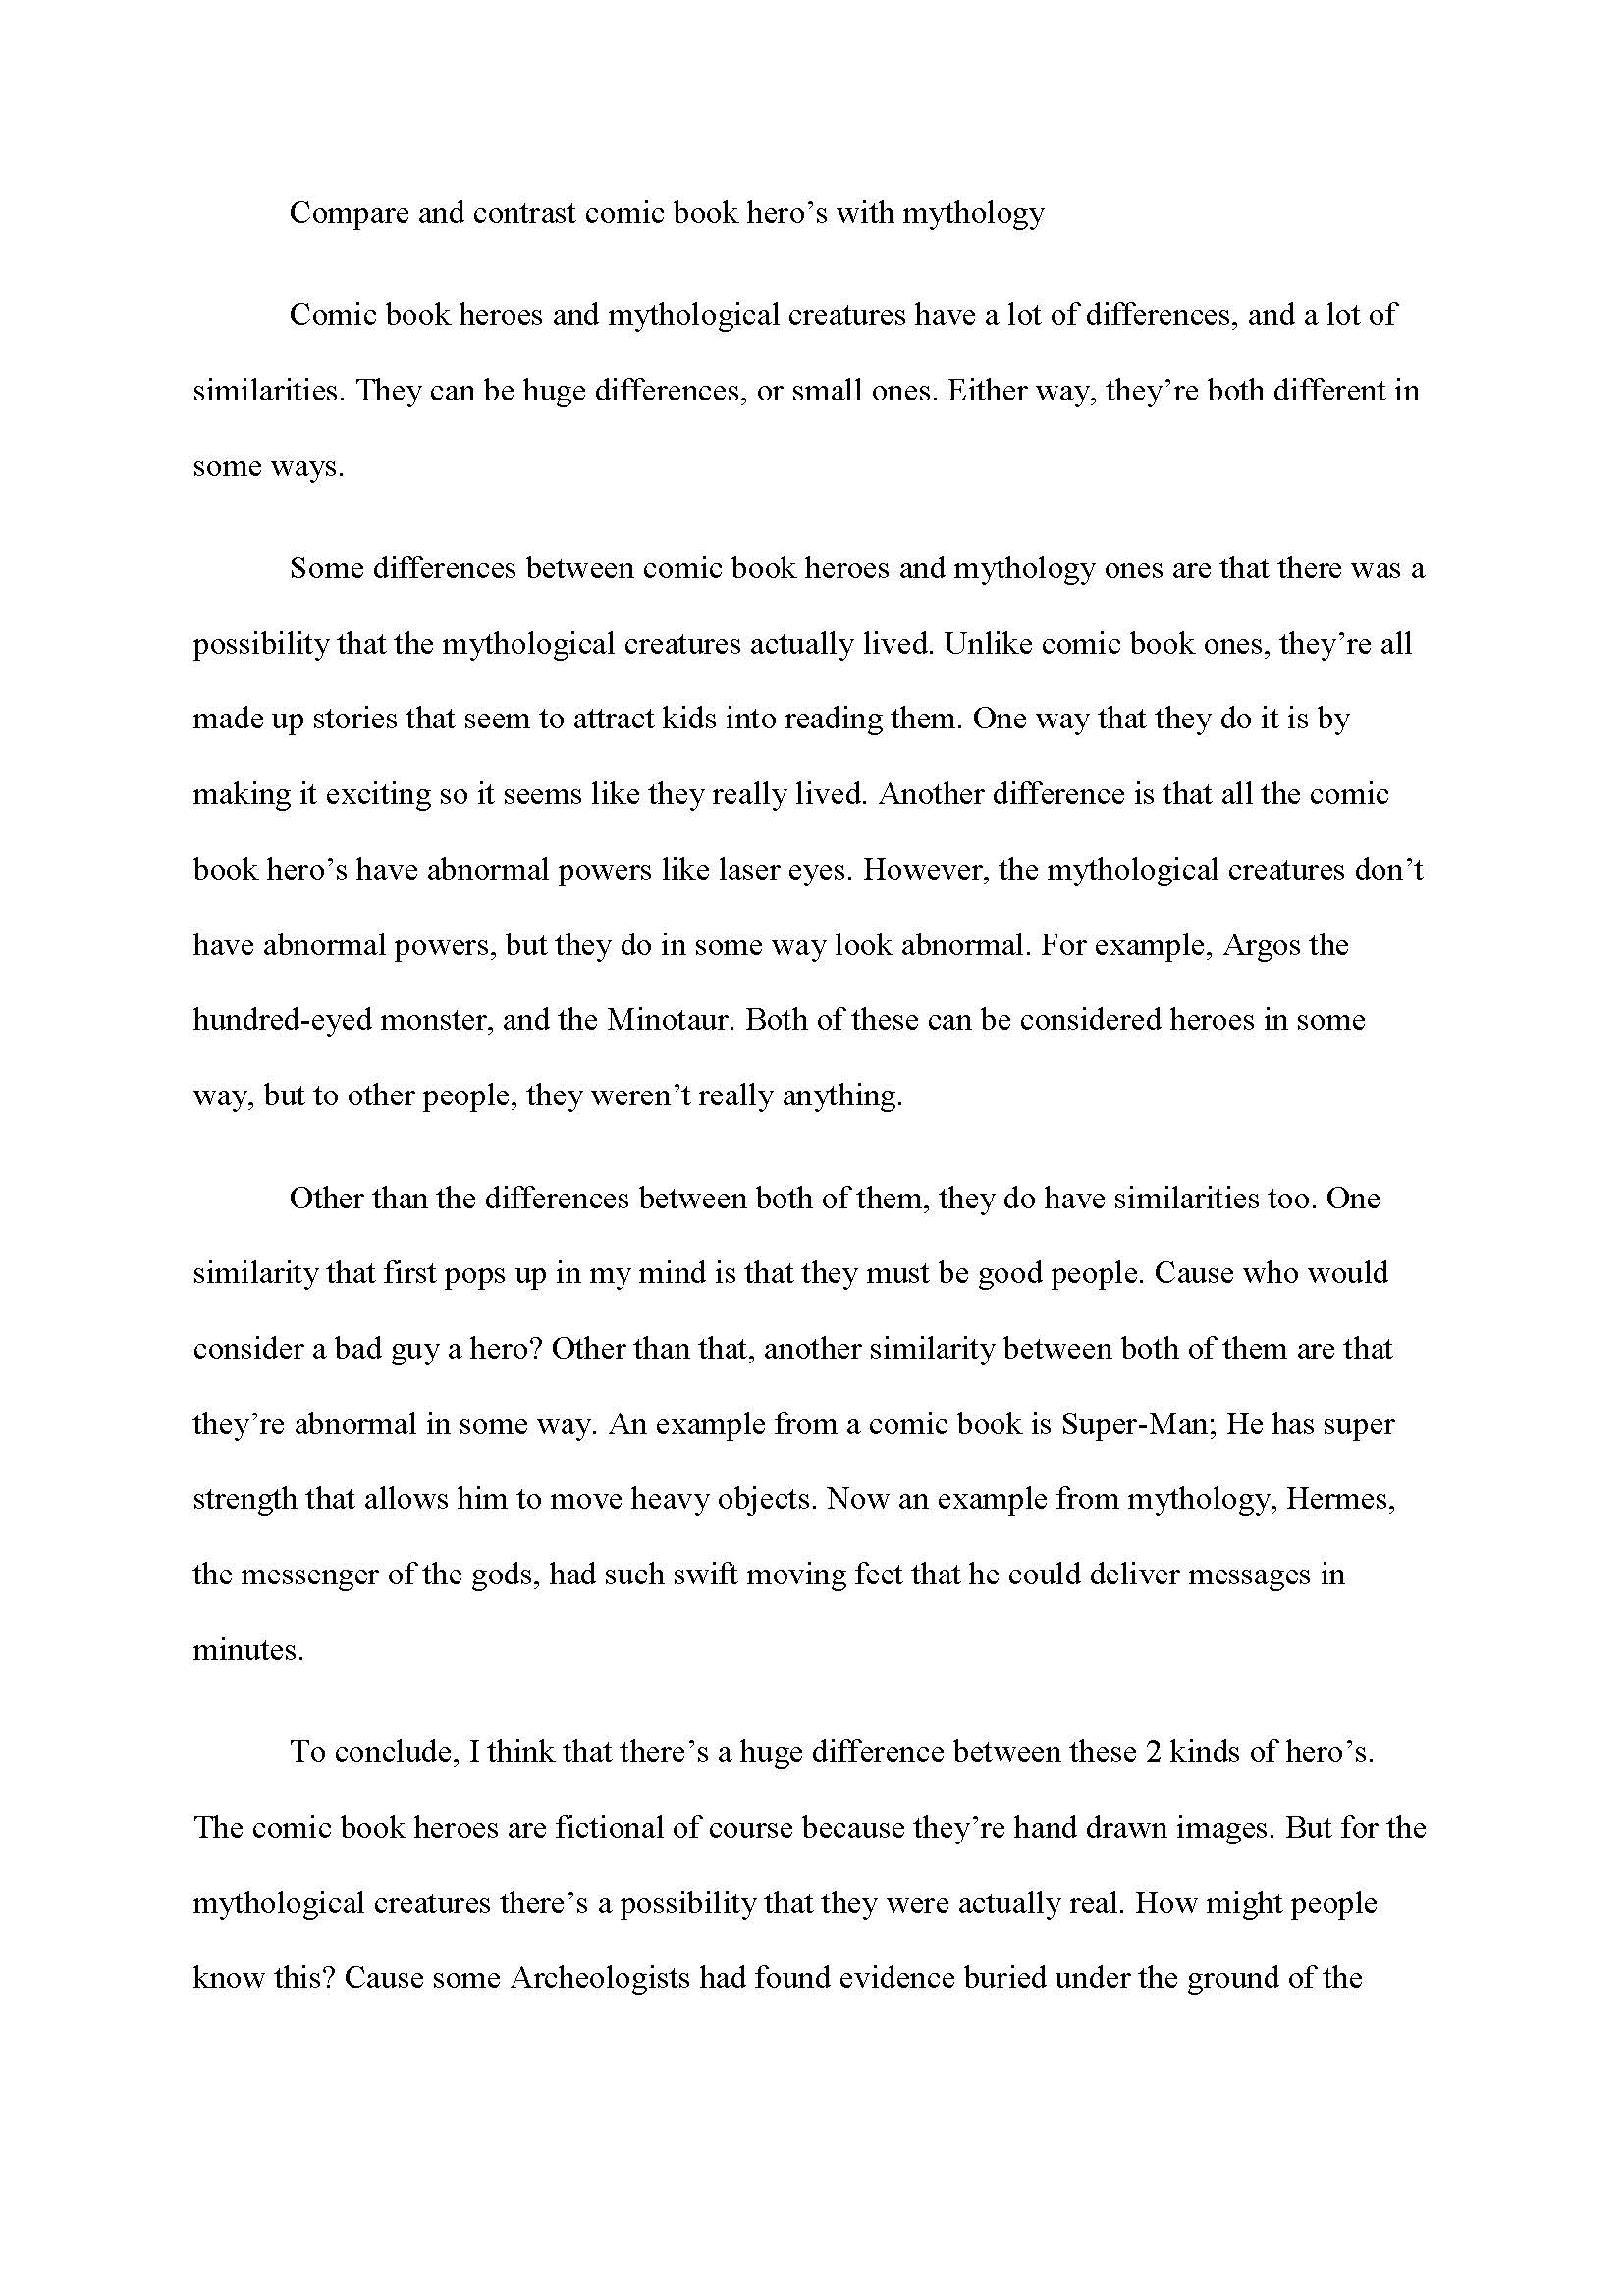 001 Compare And Contrast Essay Example Formidable A Apush Thesis Topics 2017 Full